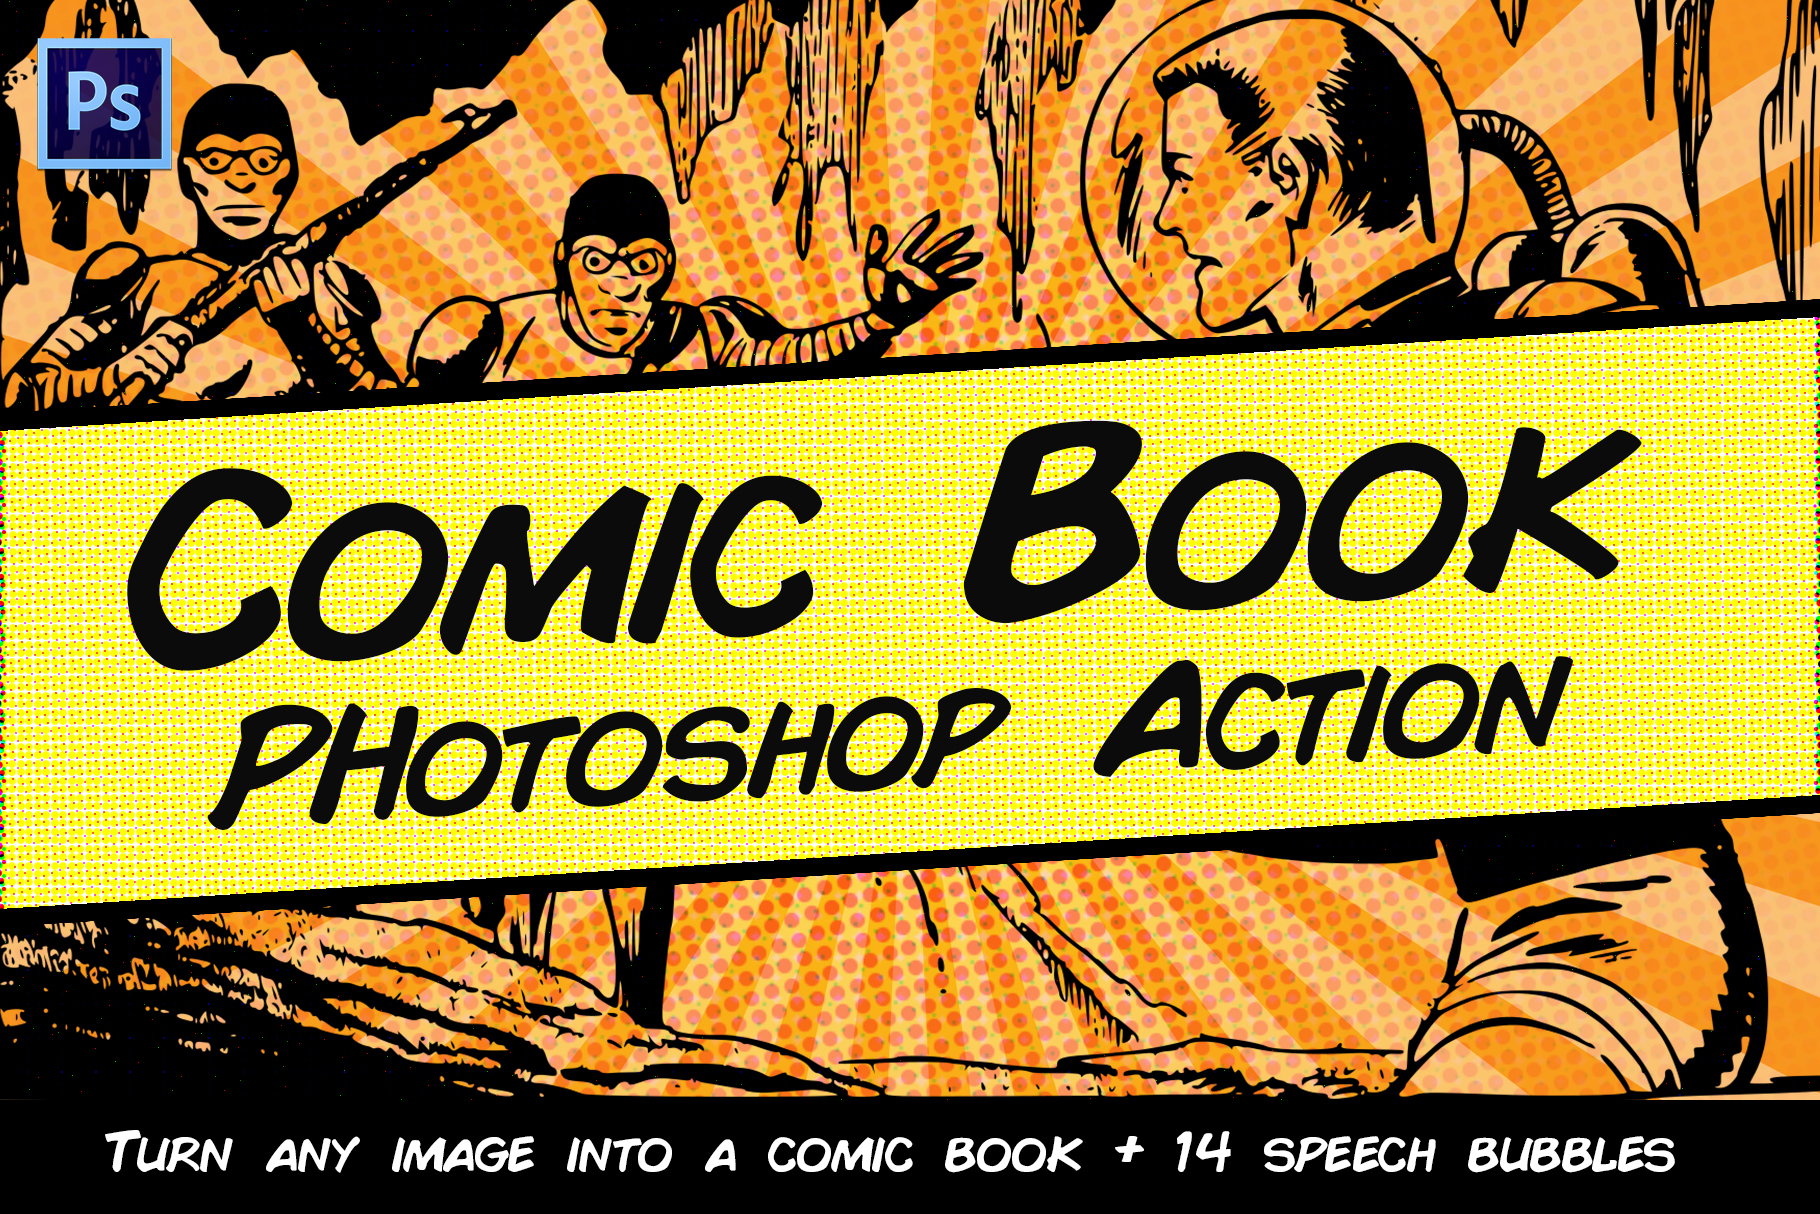 Comic Book Photoshop Action example image 1